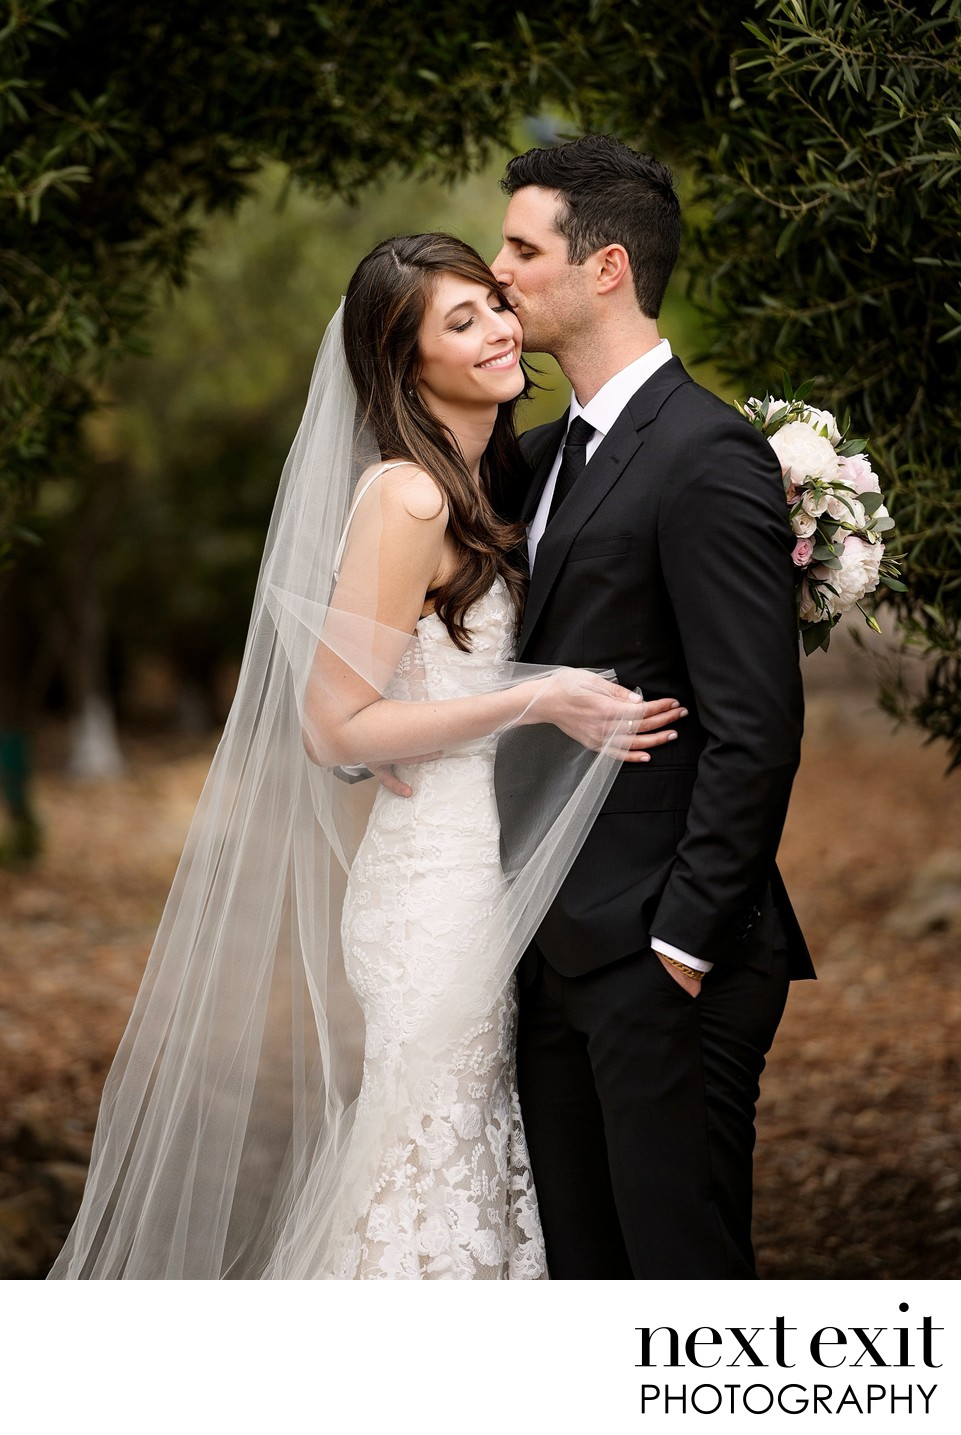 Stunning Bride with Veil - Los Angeles Wedding, Mitzvah & Portrait Photographer - Next Exit Photography